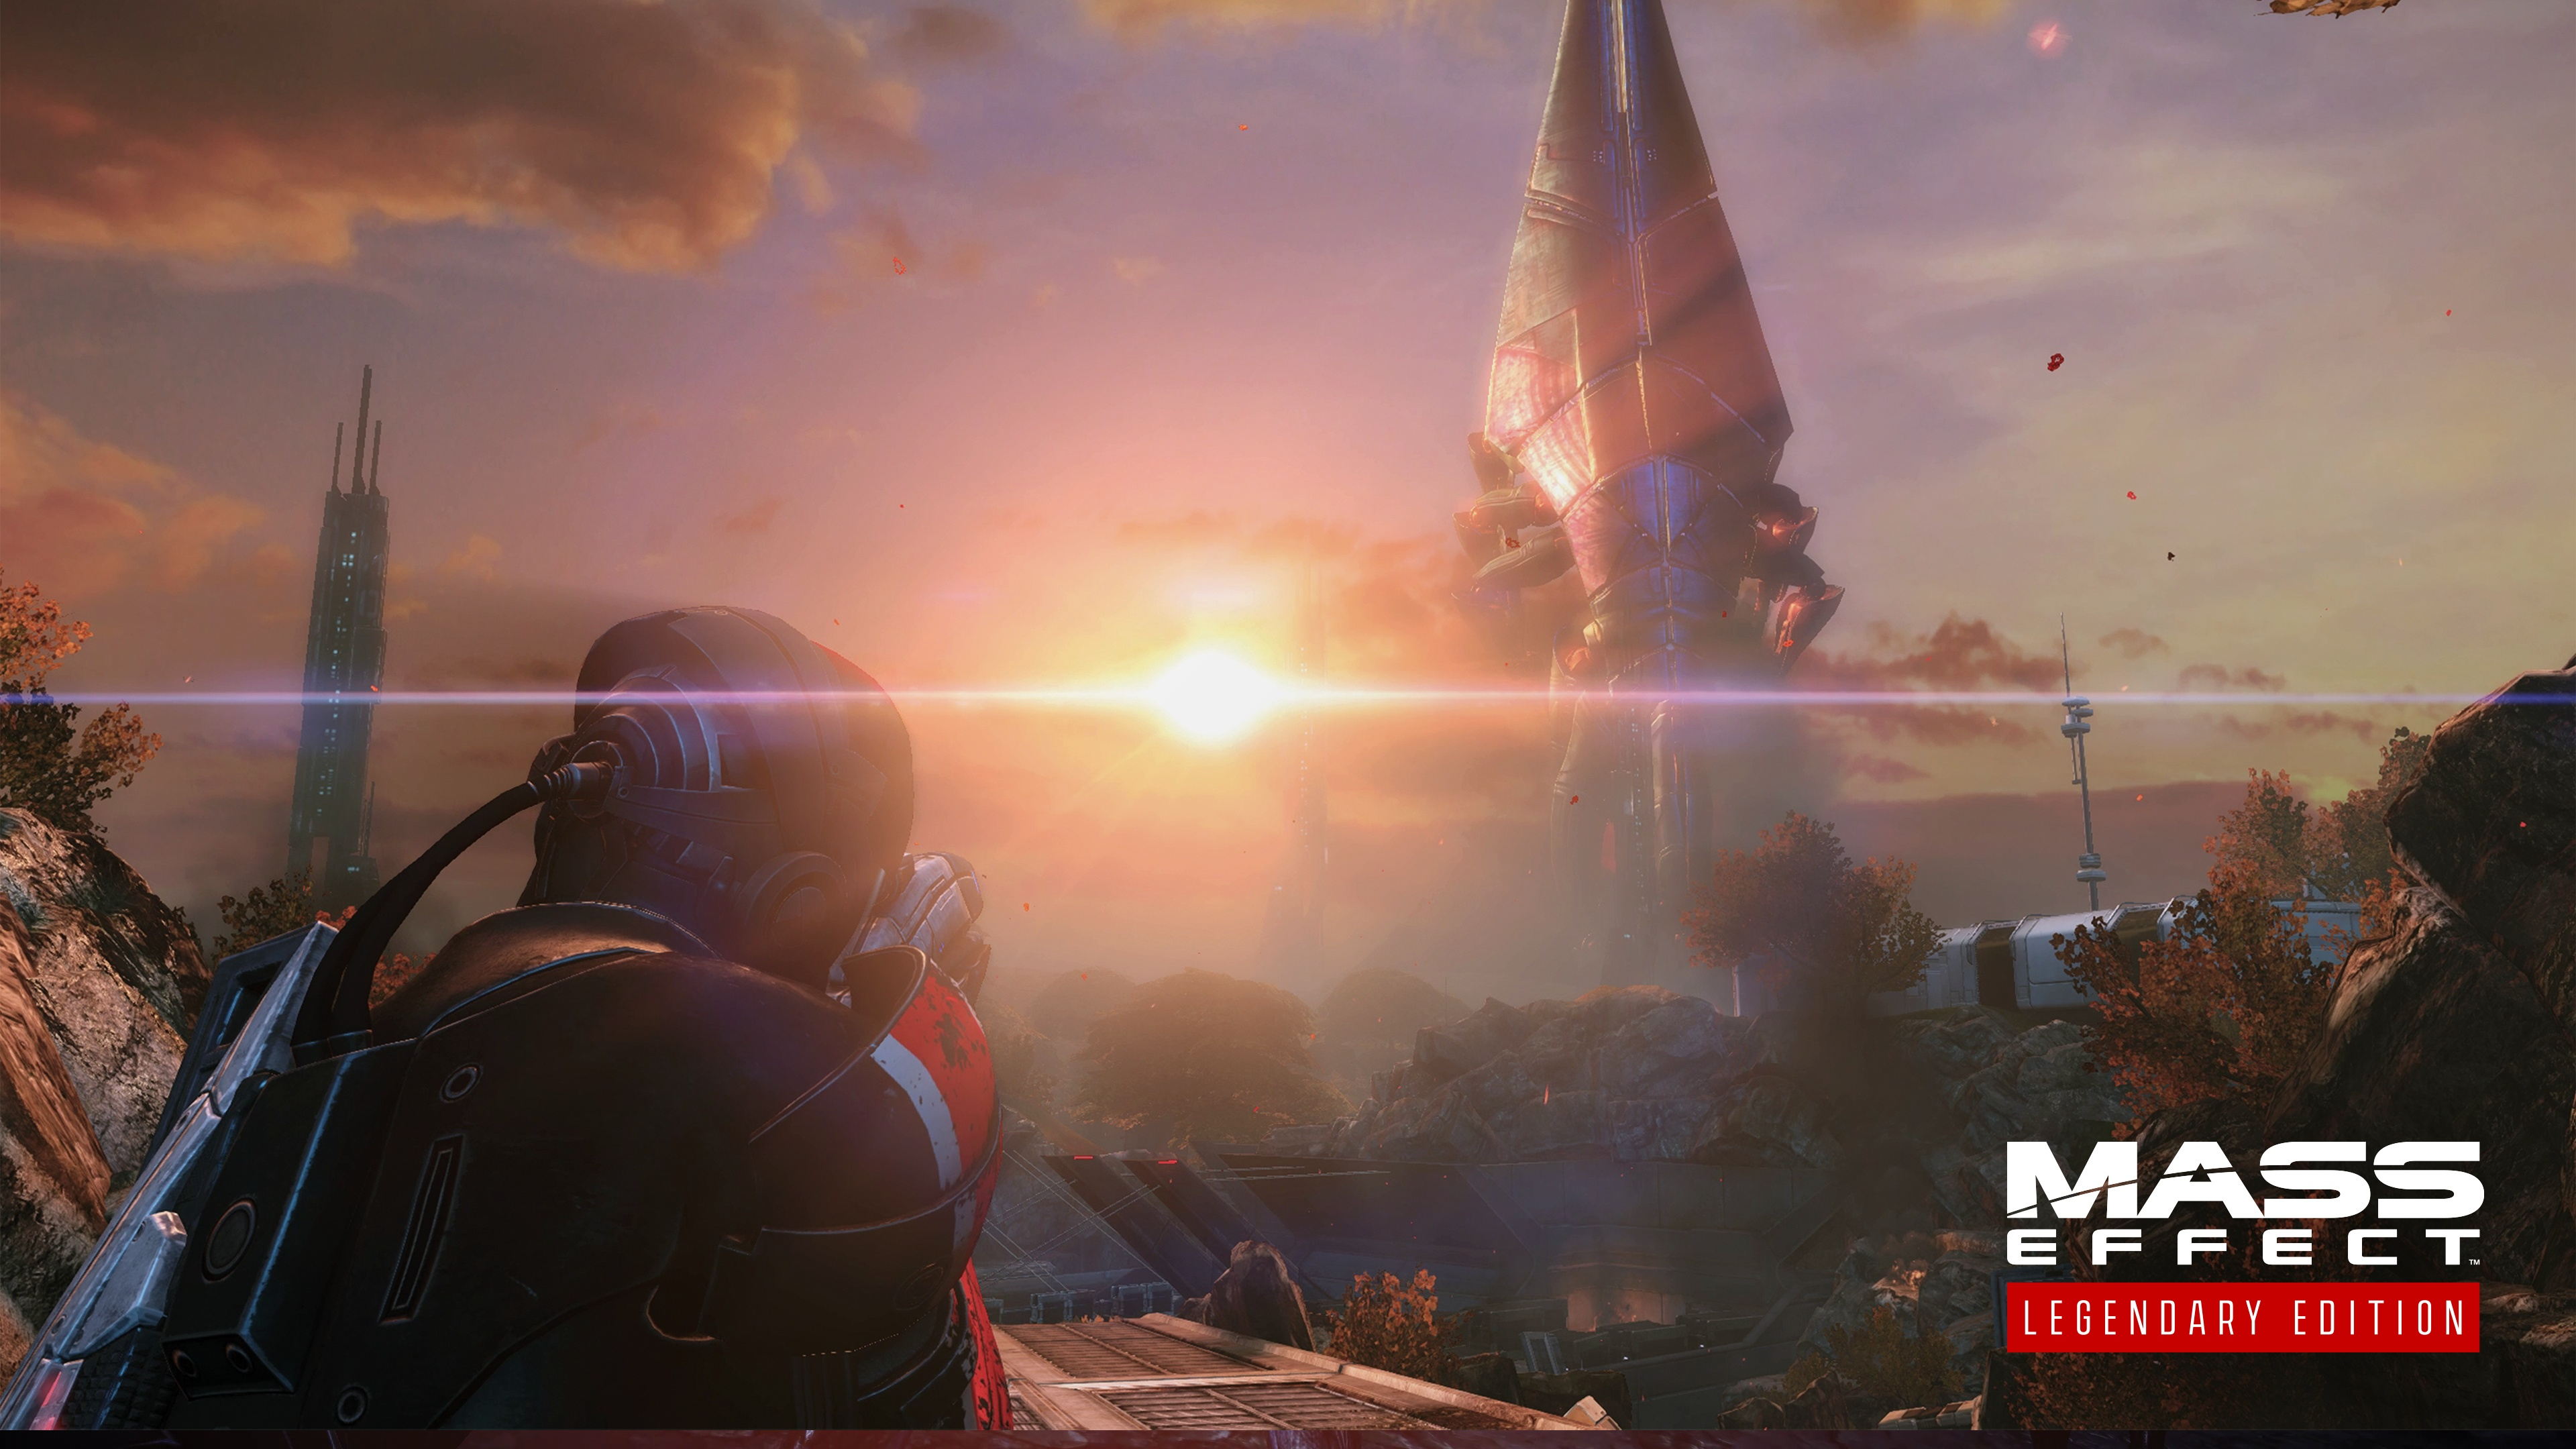 Mass Effect Legendary Edition looks like one of gaming's sharper 4K remasters – though don't expect major gameplay changes